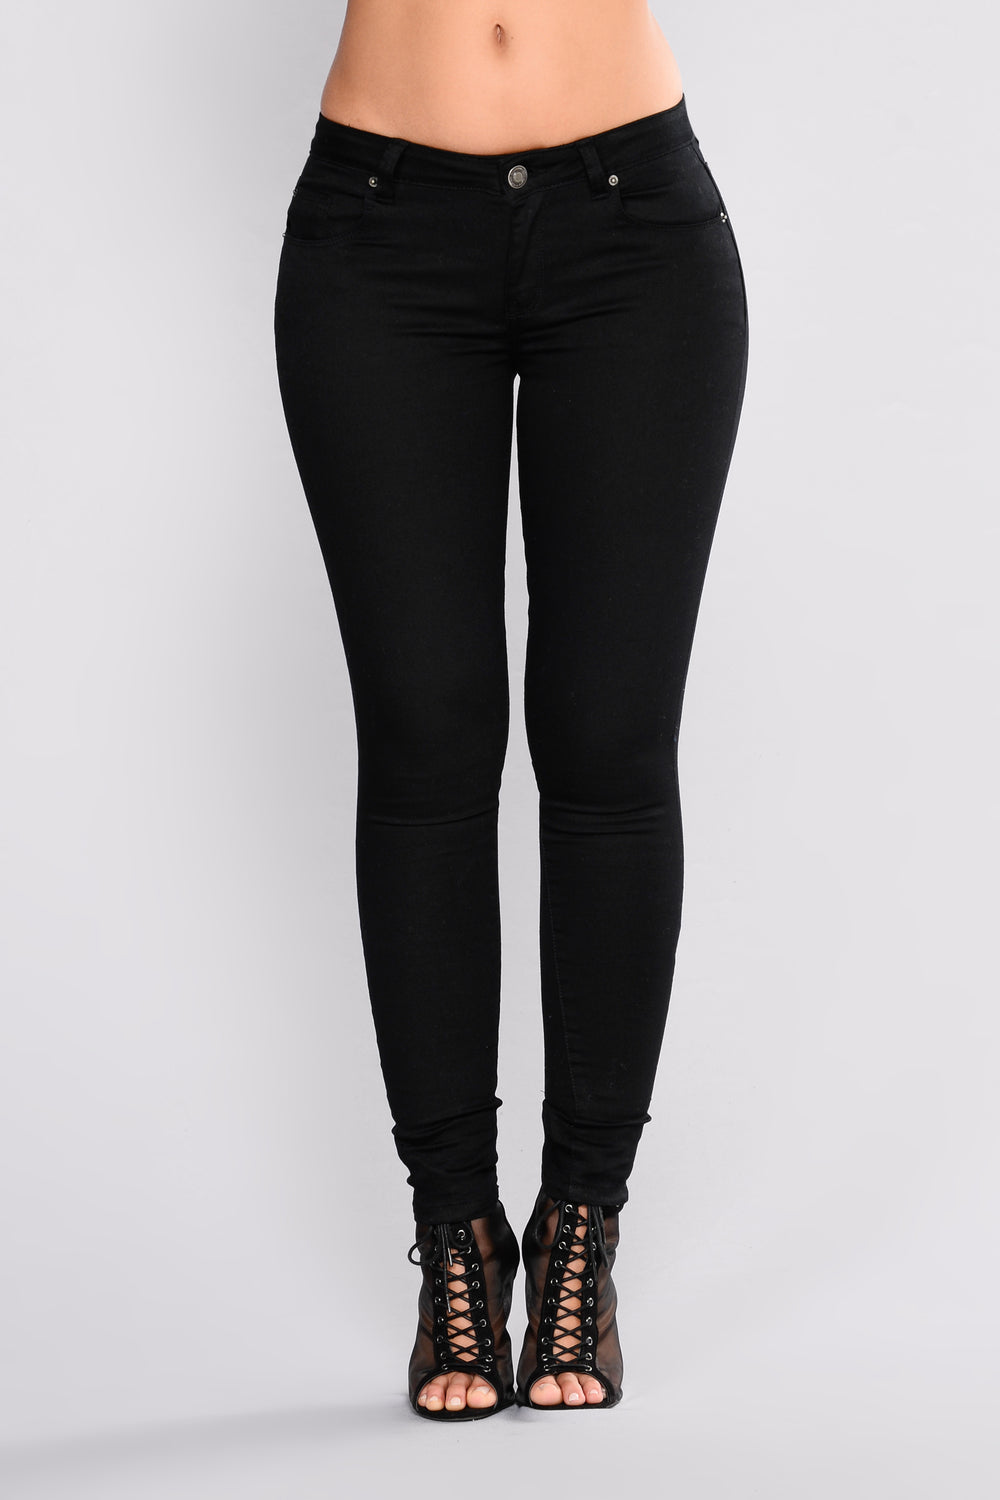 Heartbreak Horizon Skinny Jeans - Black